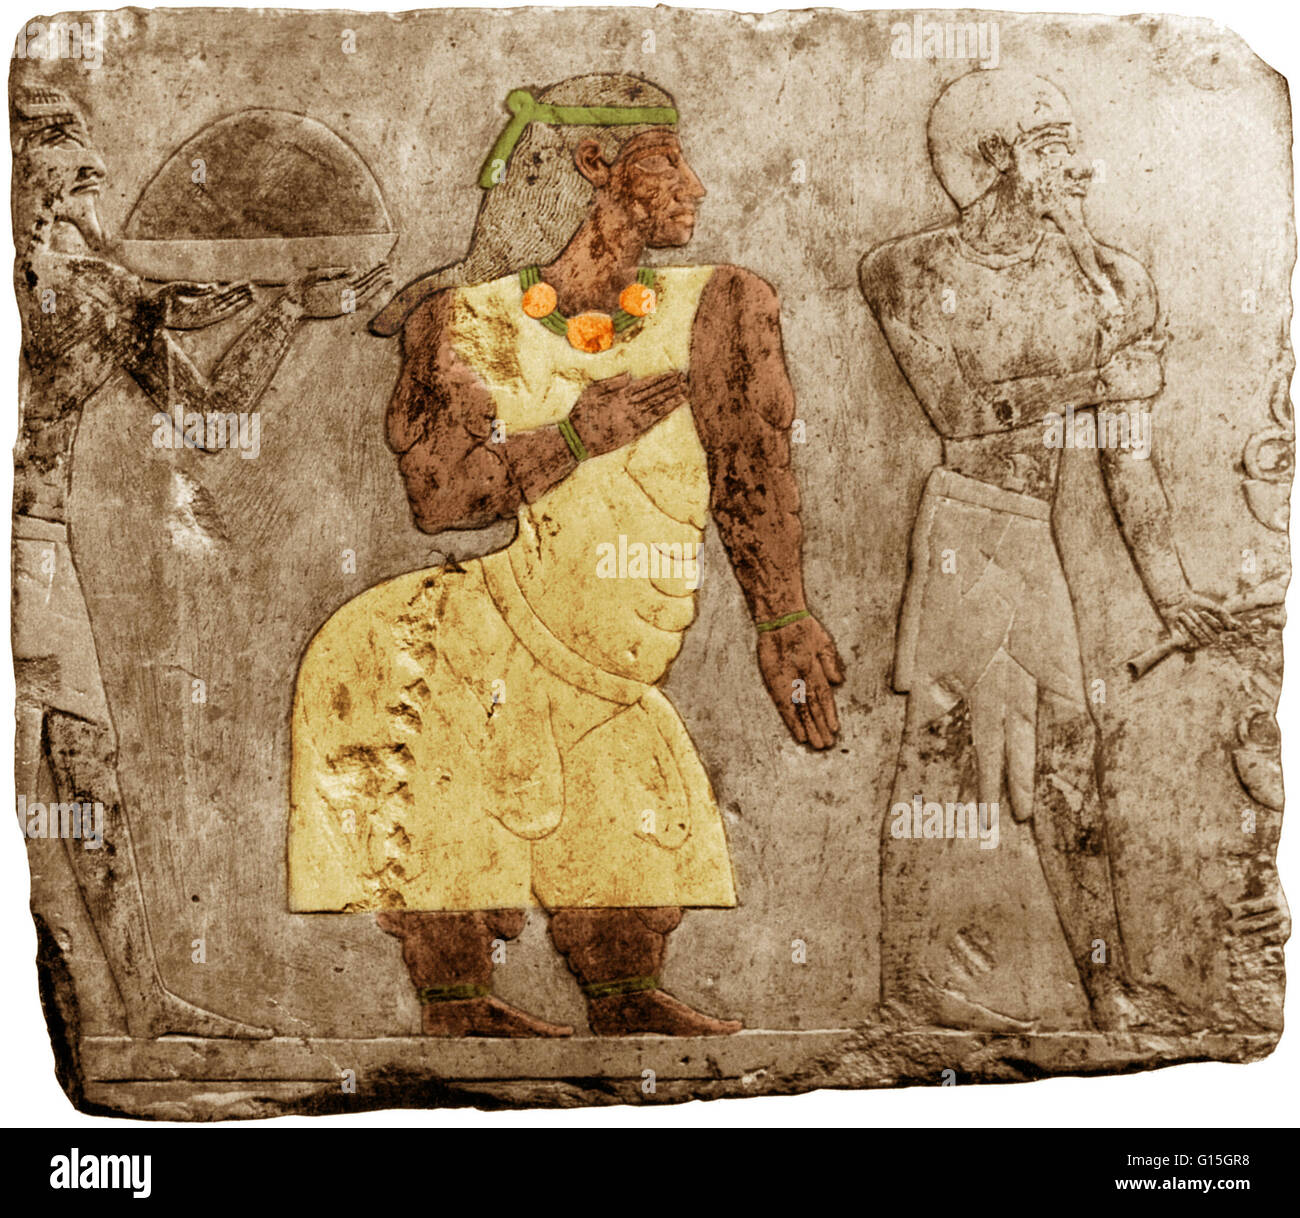 Ancient Egypt Art Stock Photos & Ancient Egypt Art Stock Images - Alamy